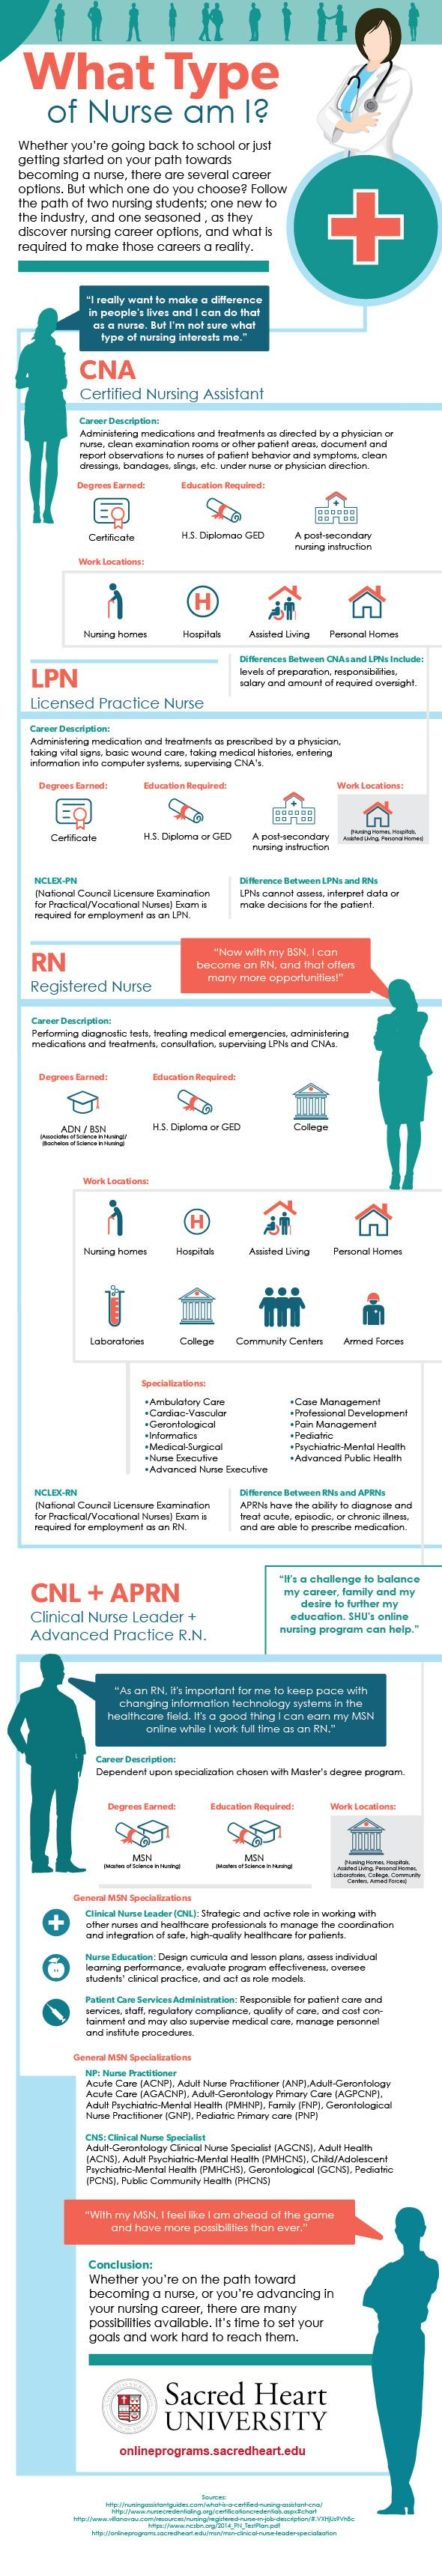 What Type of Nurse Am I? #infographic #Career #Nurse #What Type of Nurse